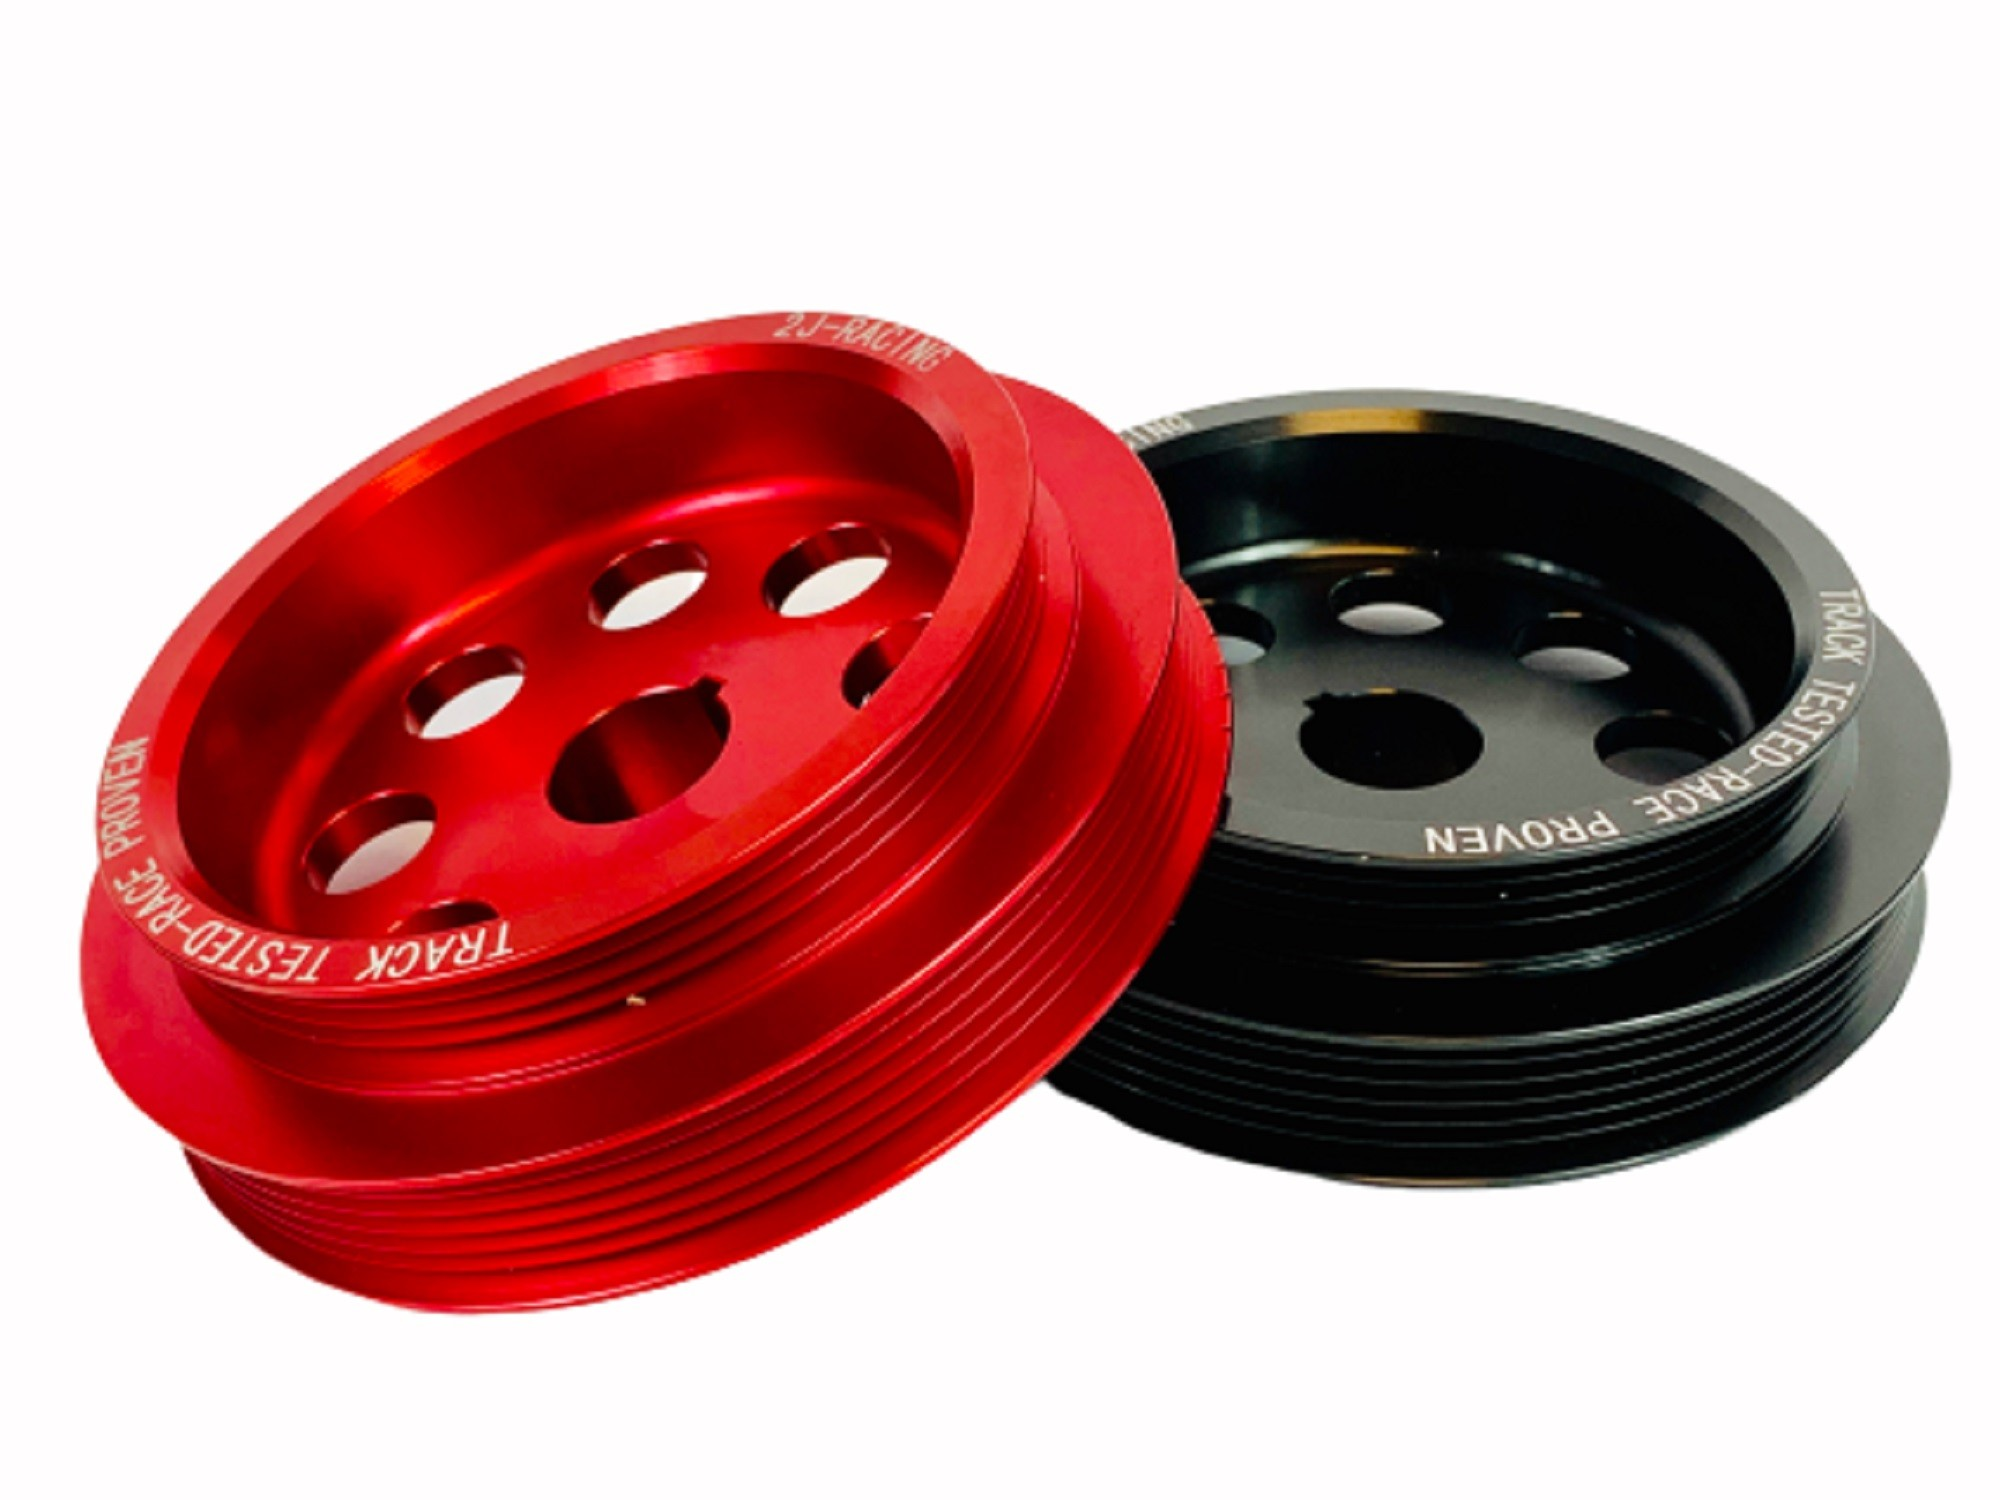 QG18DE  (1.8L) B15 Sentra Lightweight Racing Pulley (01-06)